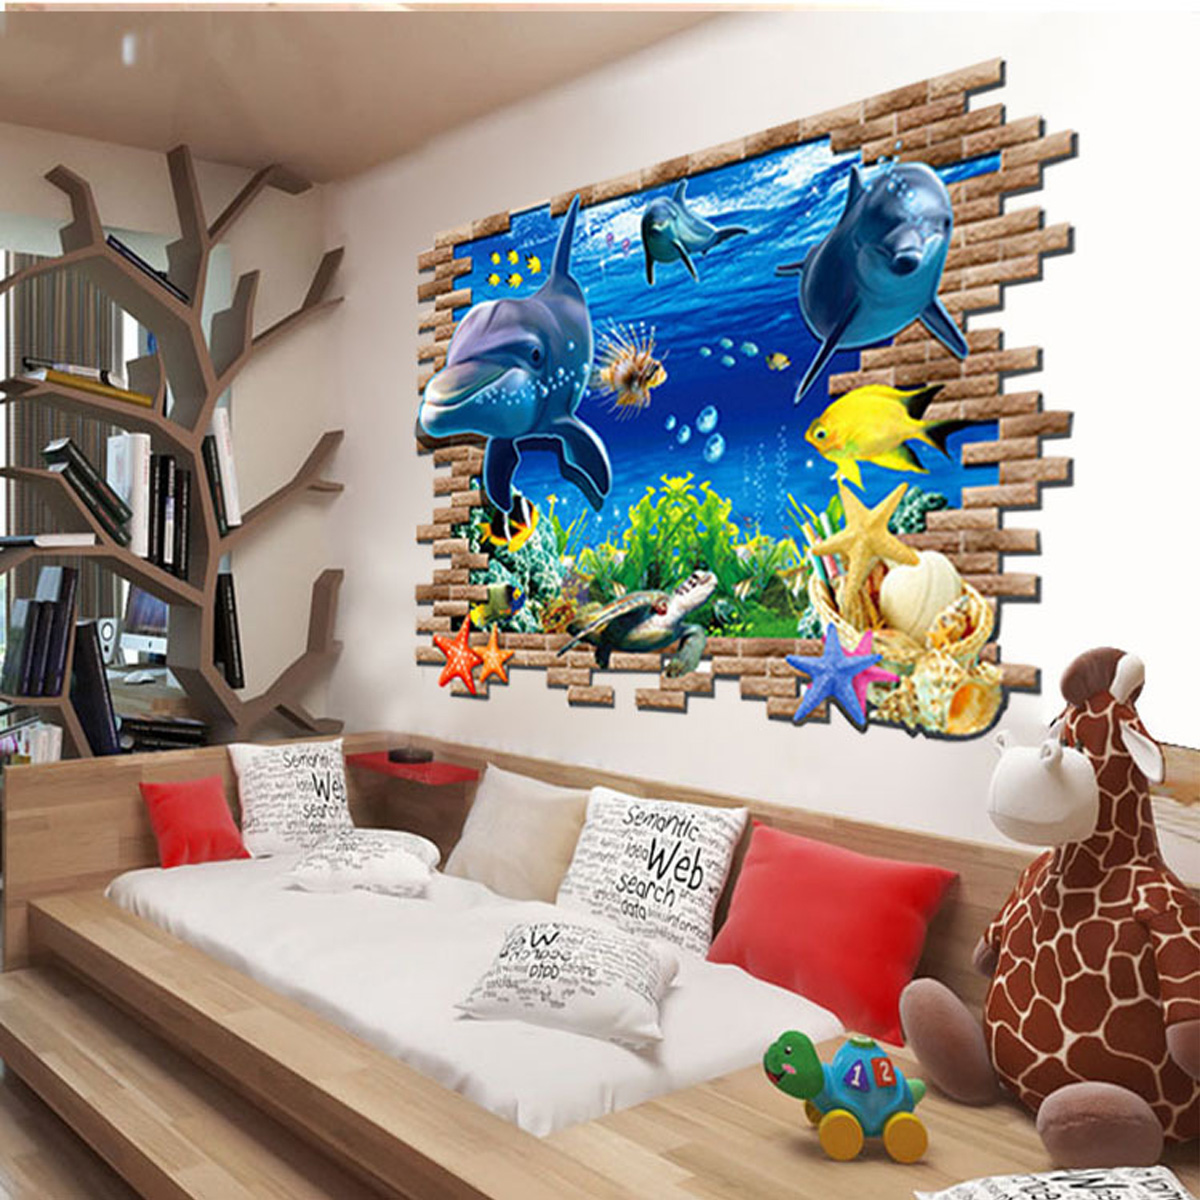 wandtattoo fisch delfine ozean meer wanddekoration vinyl aufkleber kinderzimmer ebay. Black Bedroom Furniture Sets. Home Design Ideas